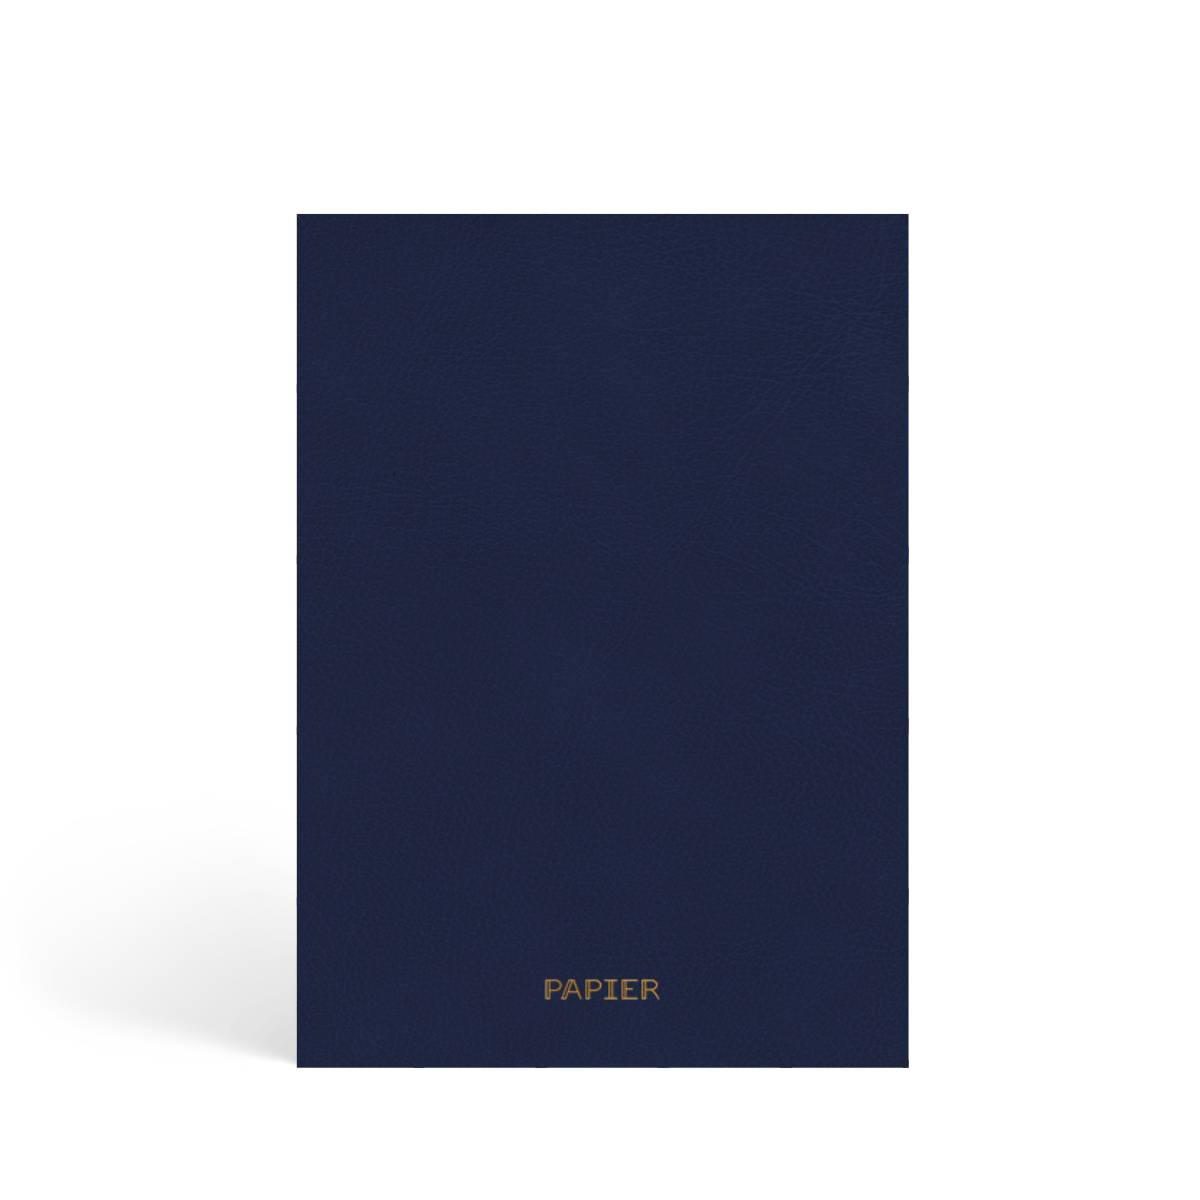 Https%3a%2f%2fwww.papier.com%2fproduct image%2f95371%2f5%2froyal blue monogram 23878 back 1573232902.png?ixlib=rb 1.1